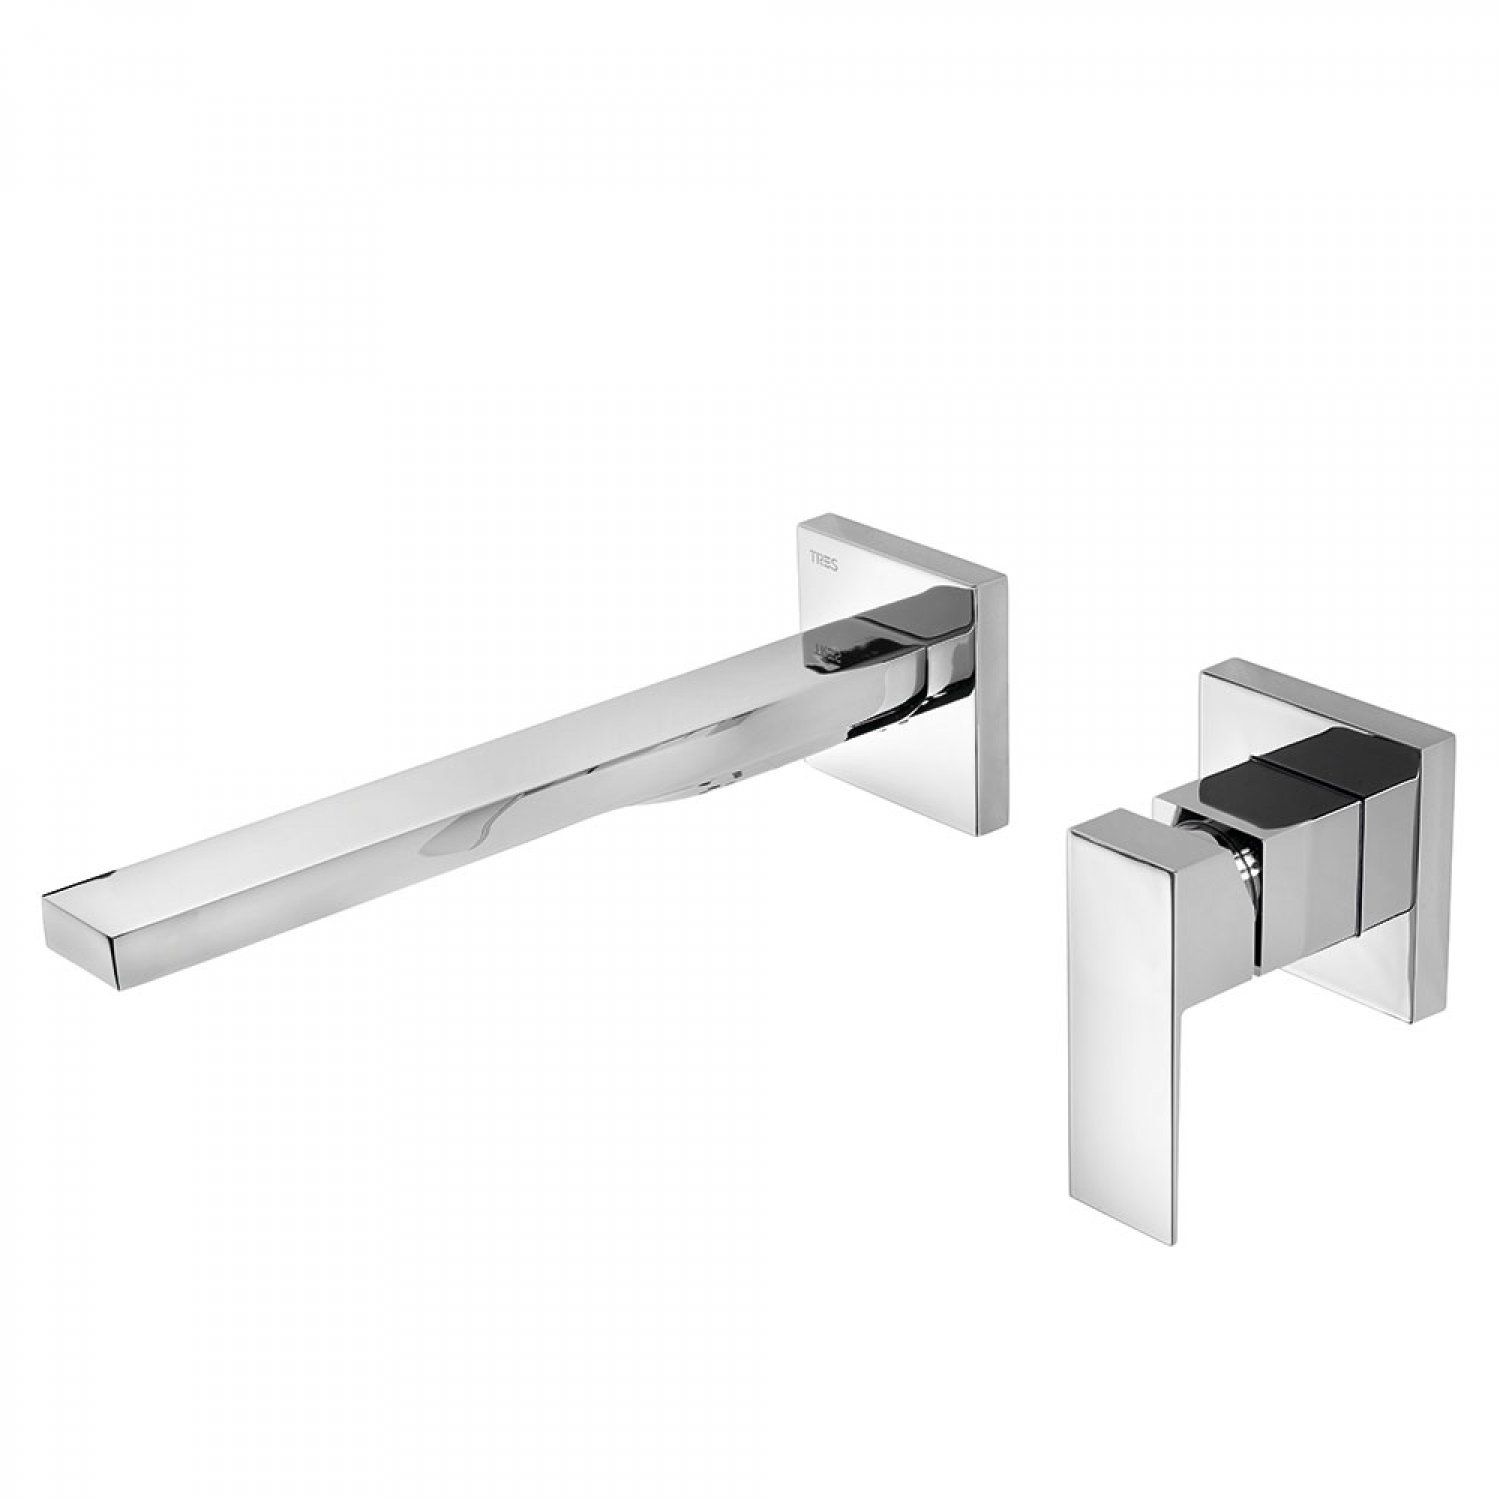 http://desidea.hu/wp-content/uploads/2019/07/Single-lever-wall-washbasin-mixer-00620011.jpg